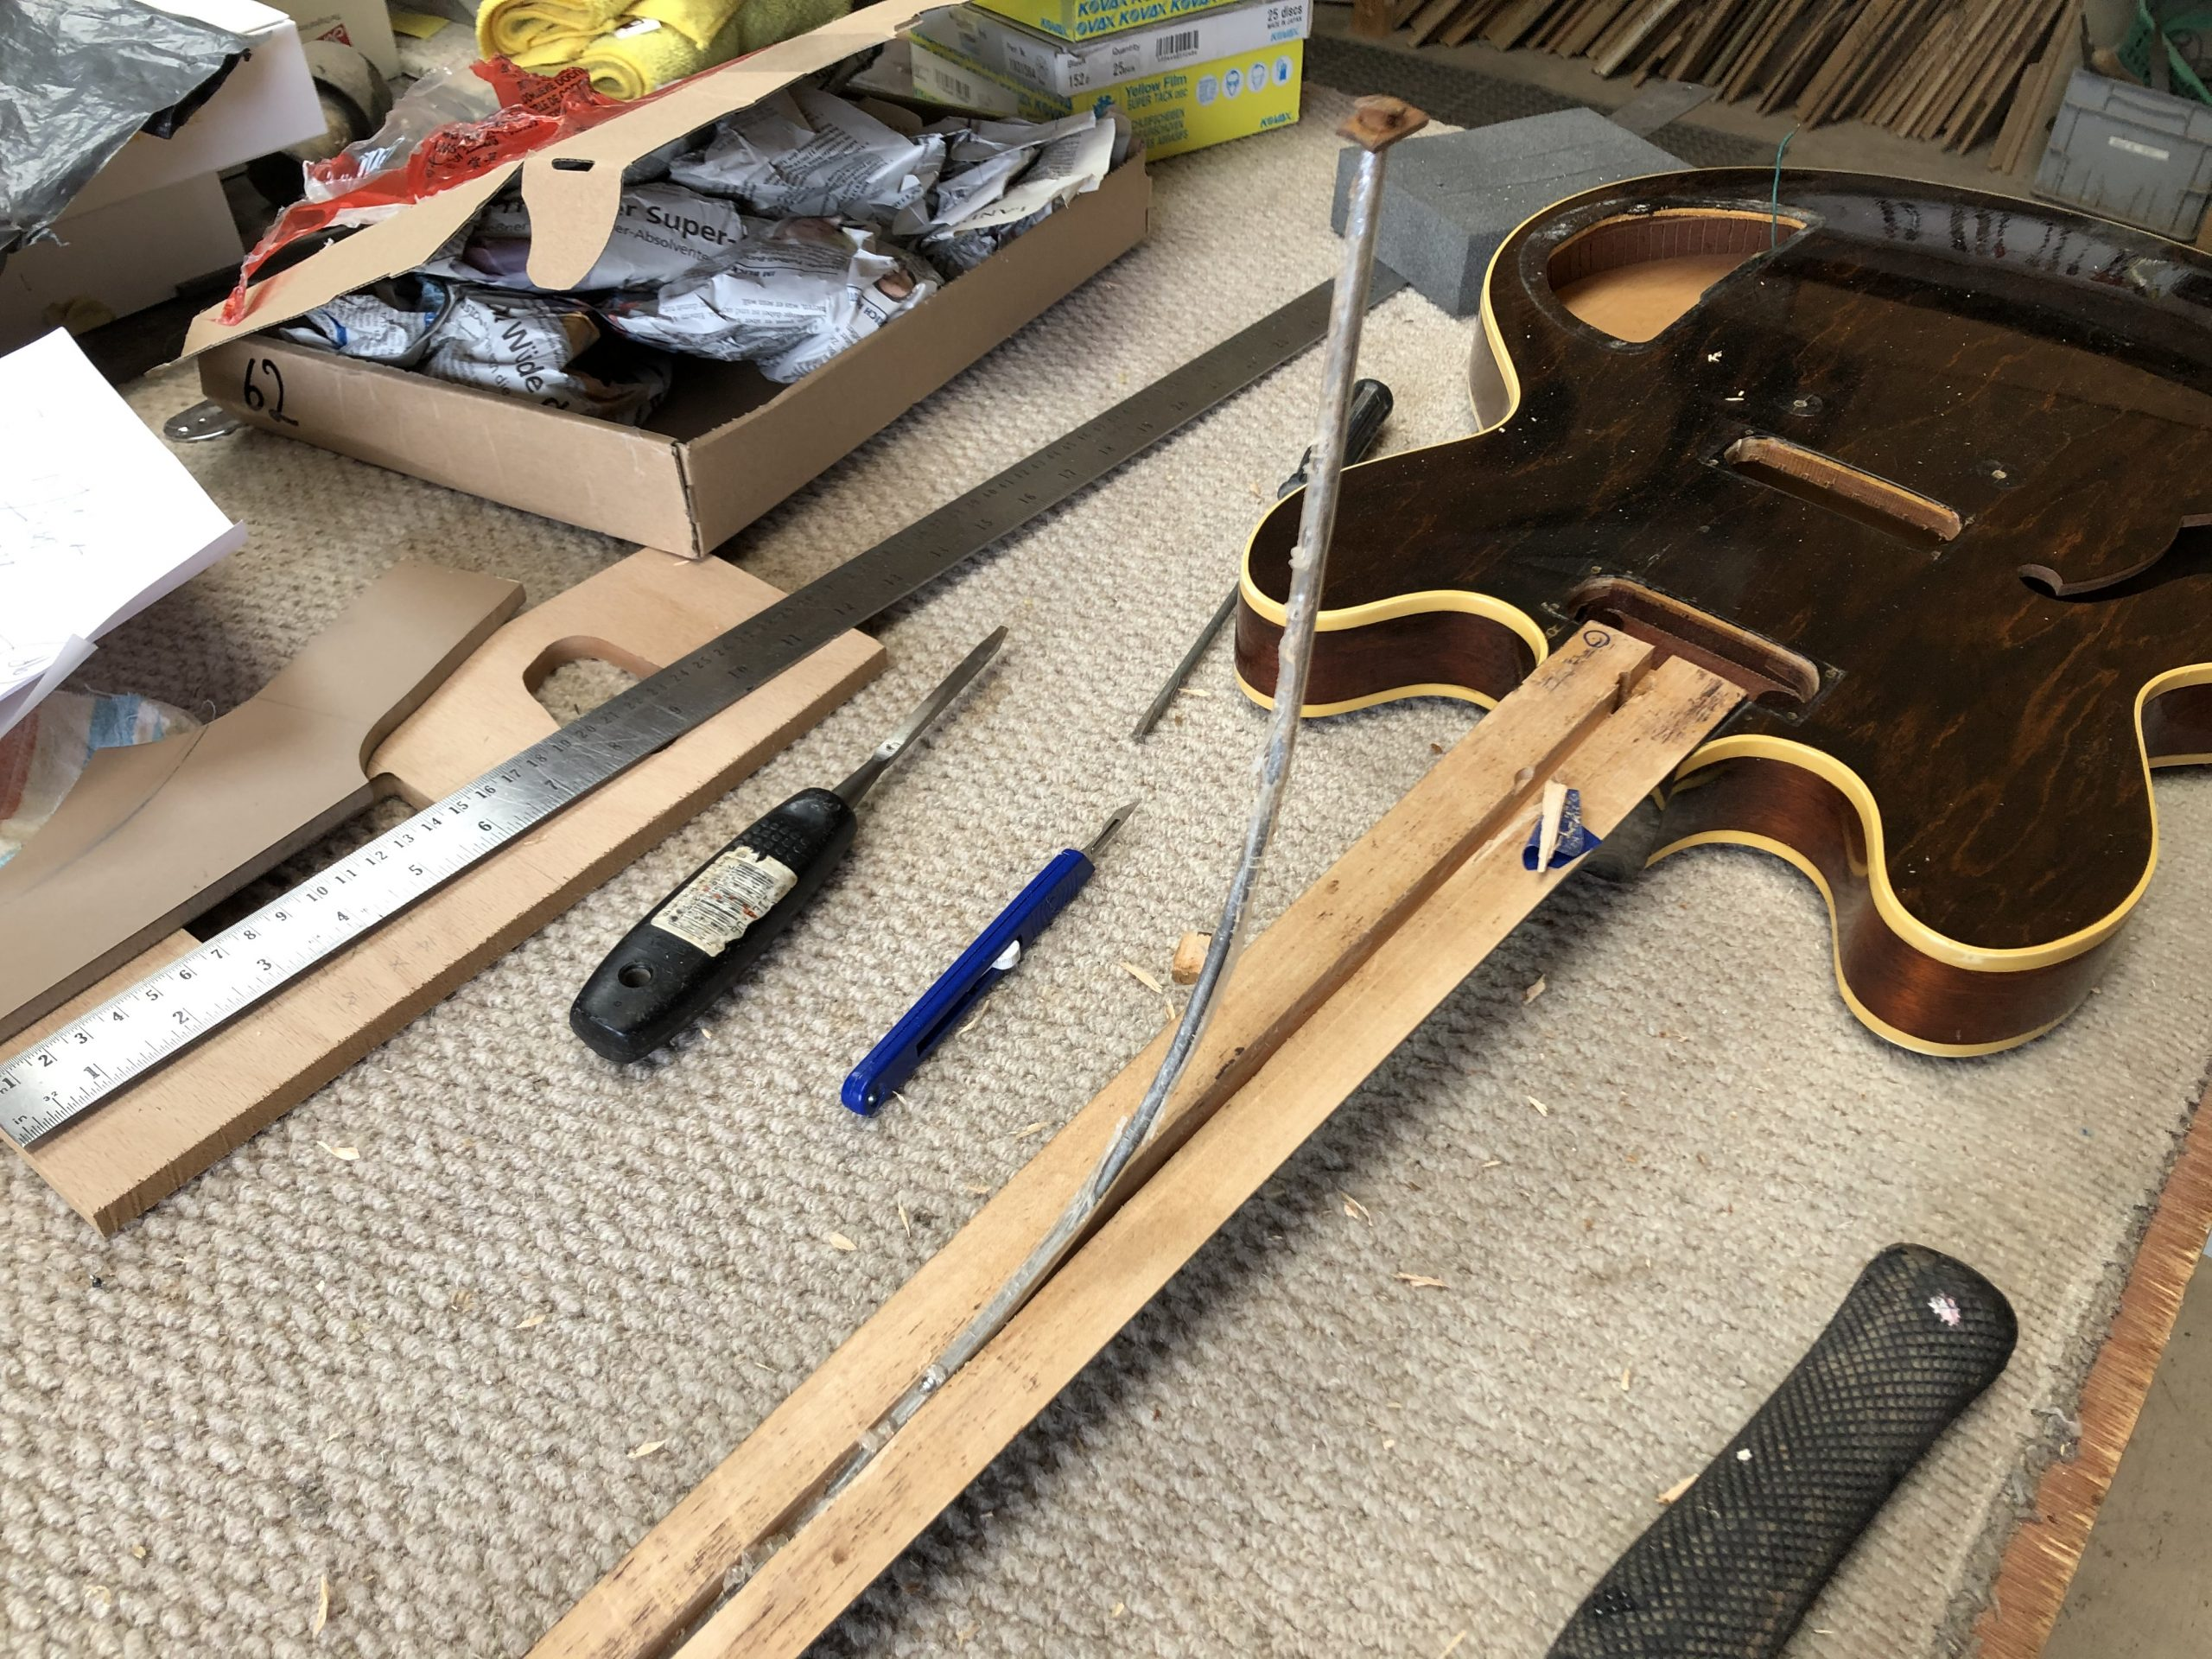 Digging out the truss rod